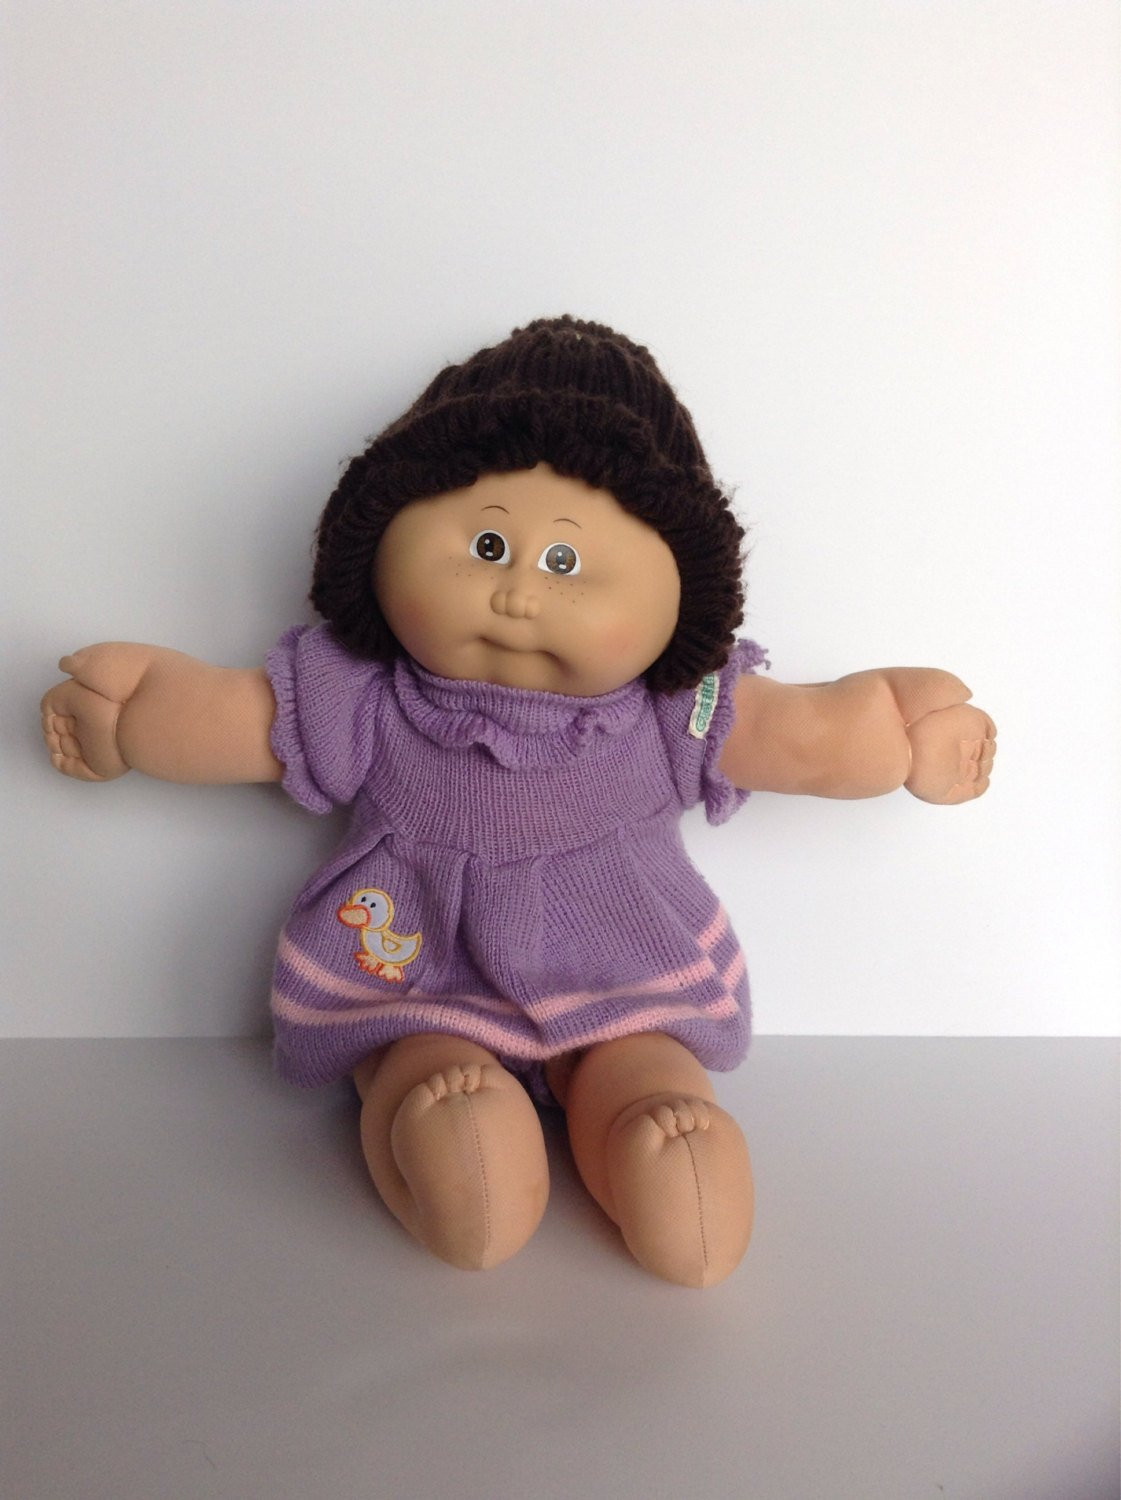 1982 Cabbage Patch Kid Doll with Freckles